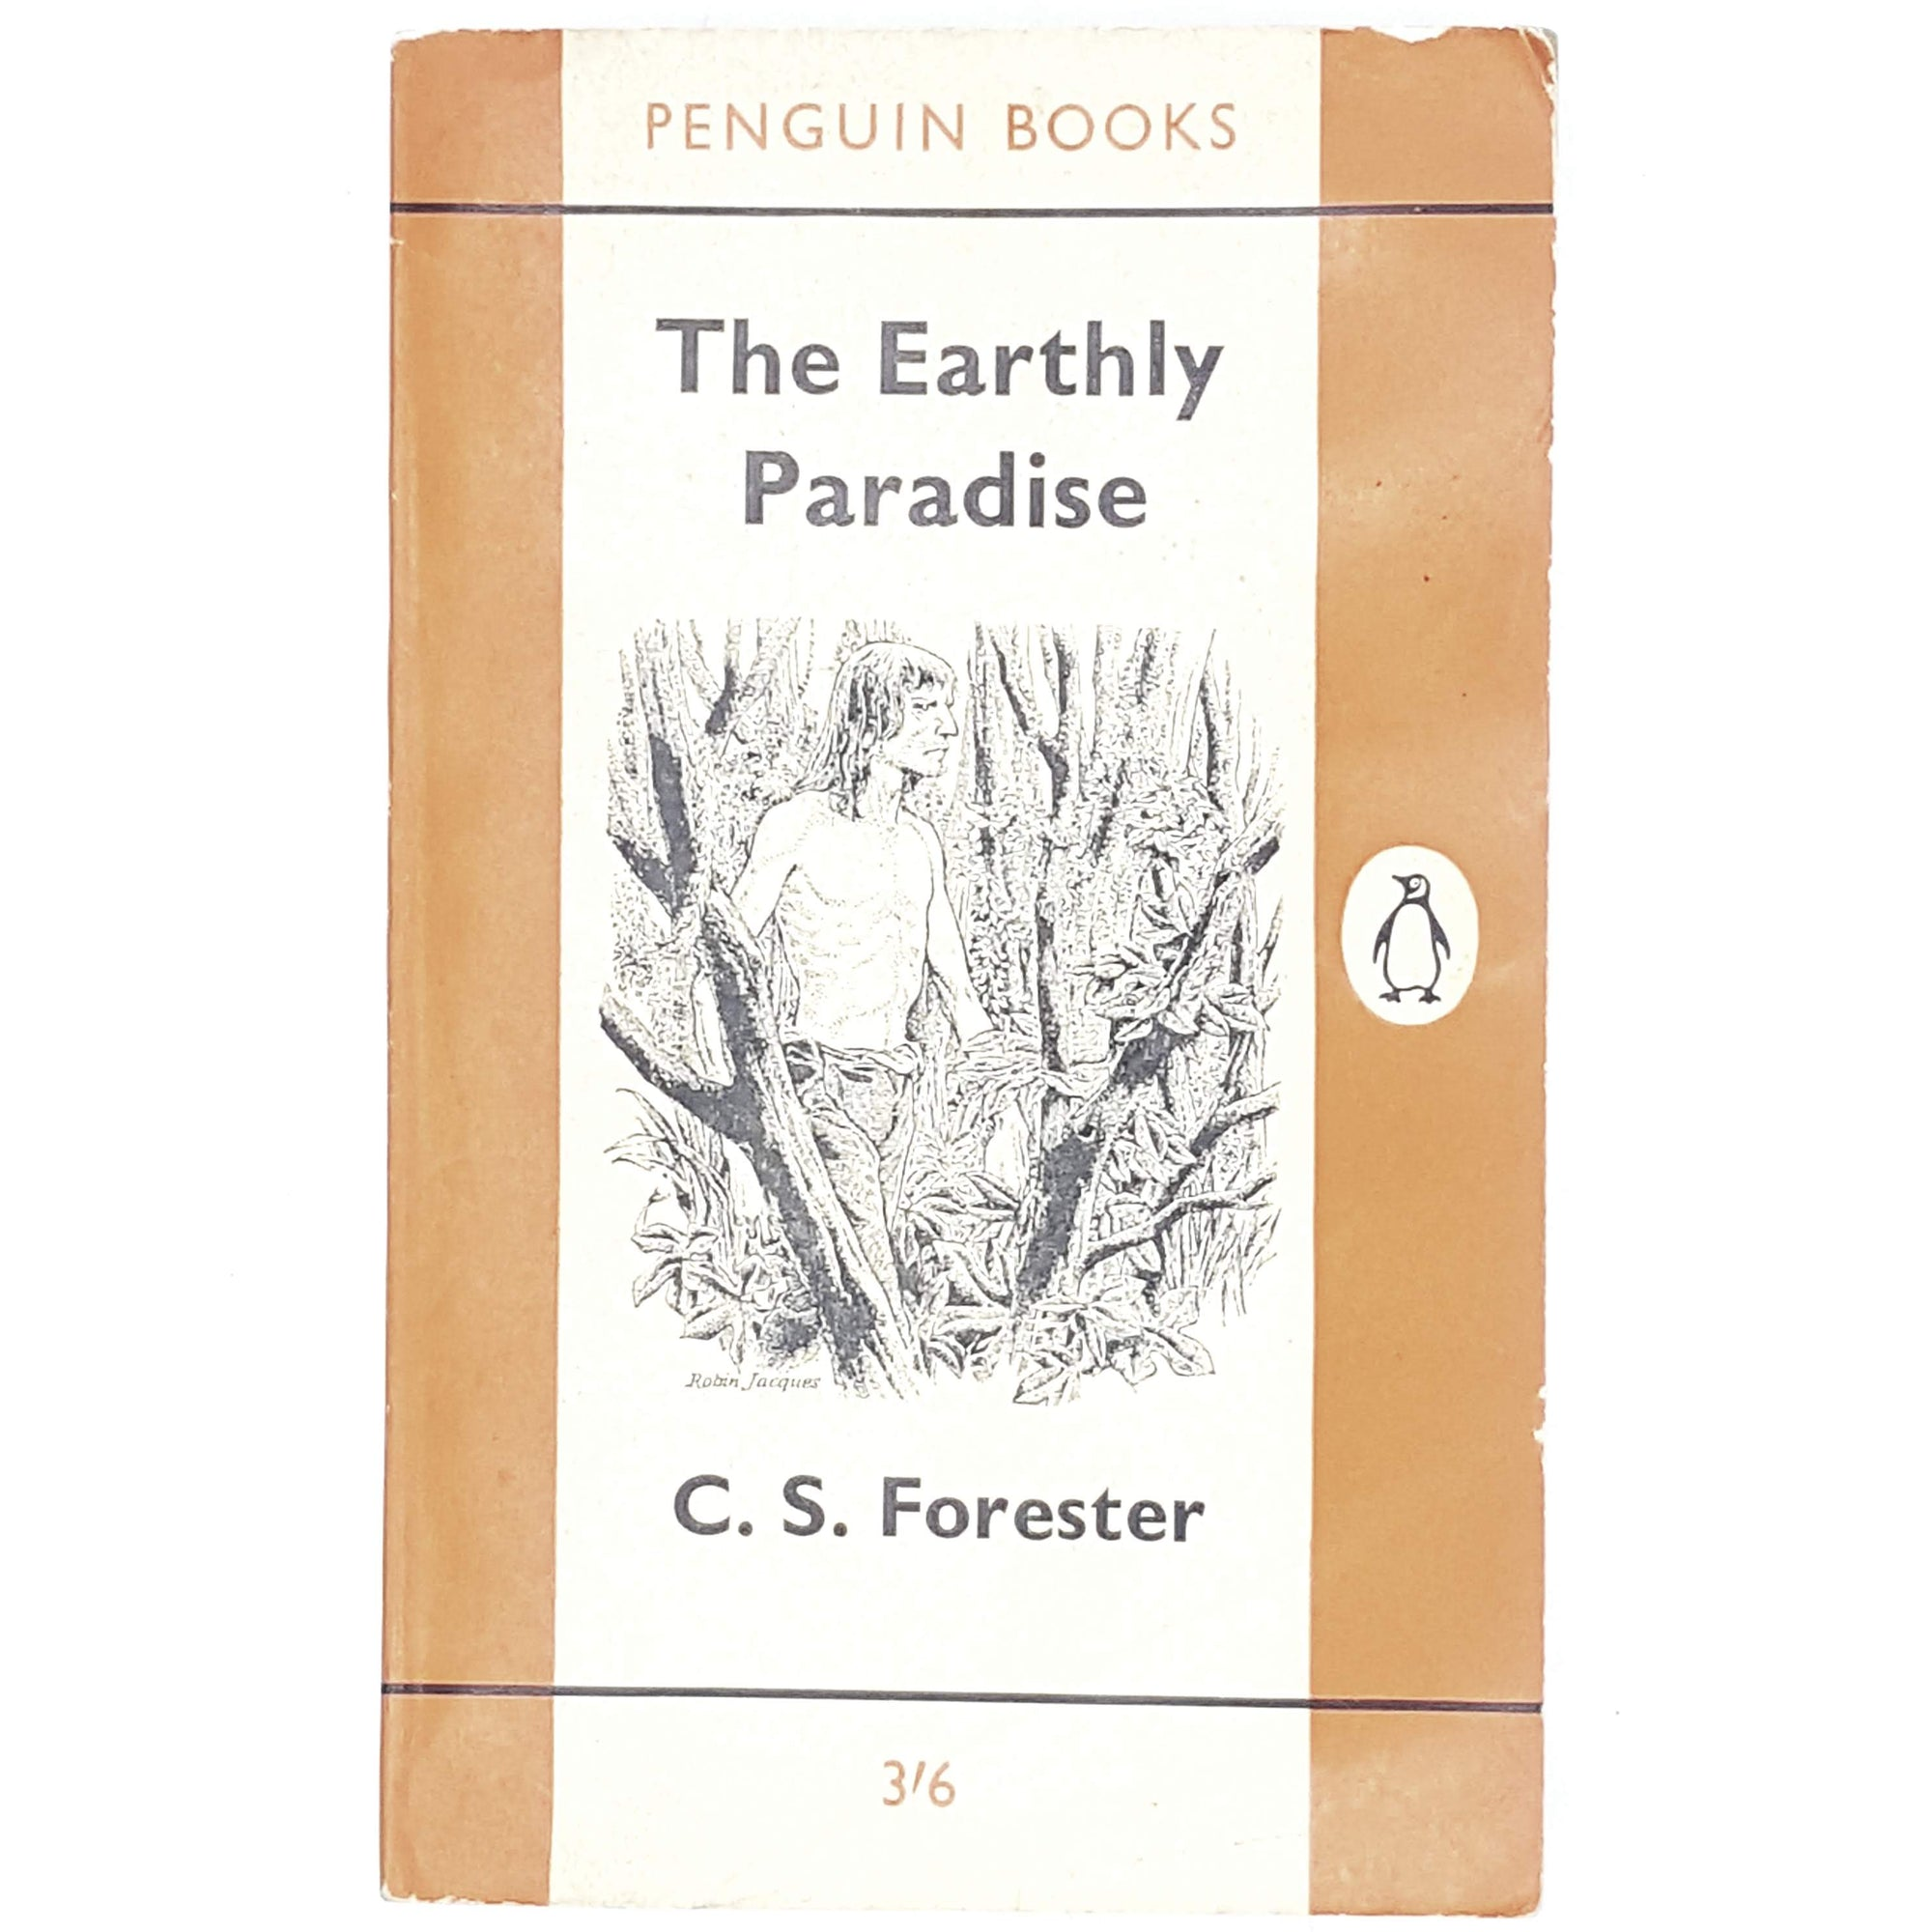 First Edition C. S. Forester's The Earthly Paradise 1962